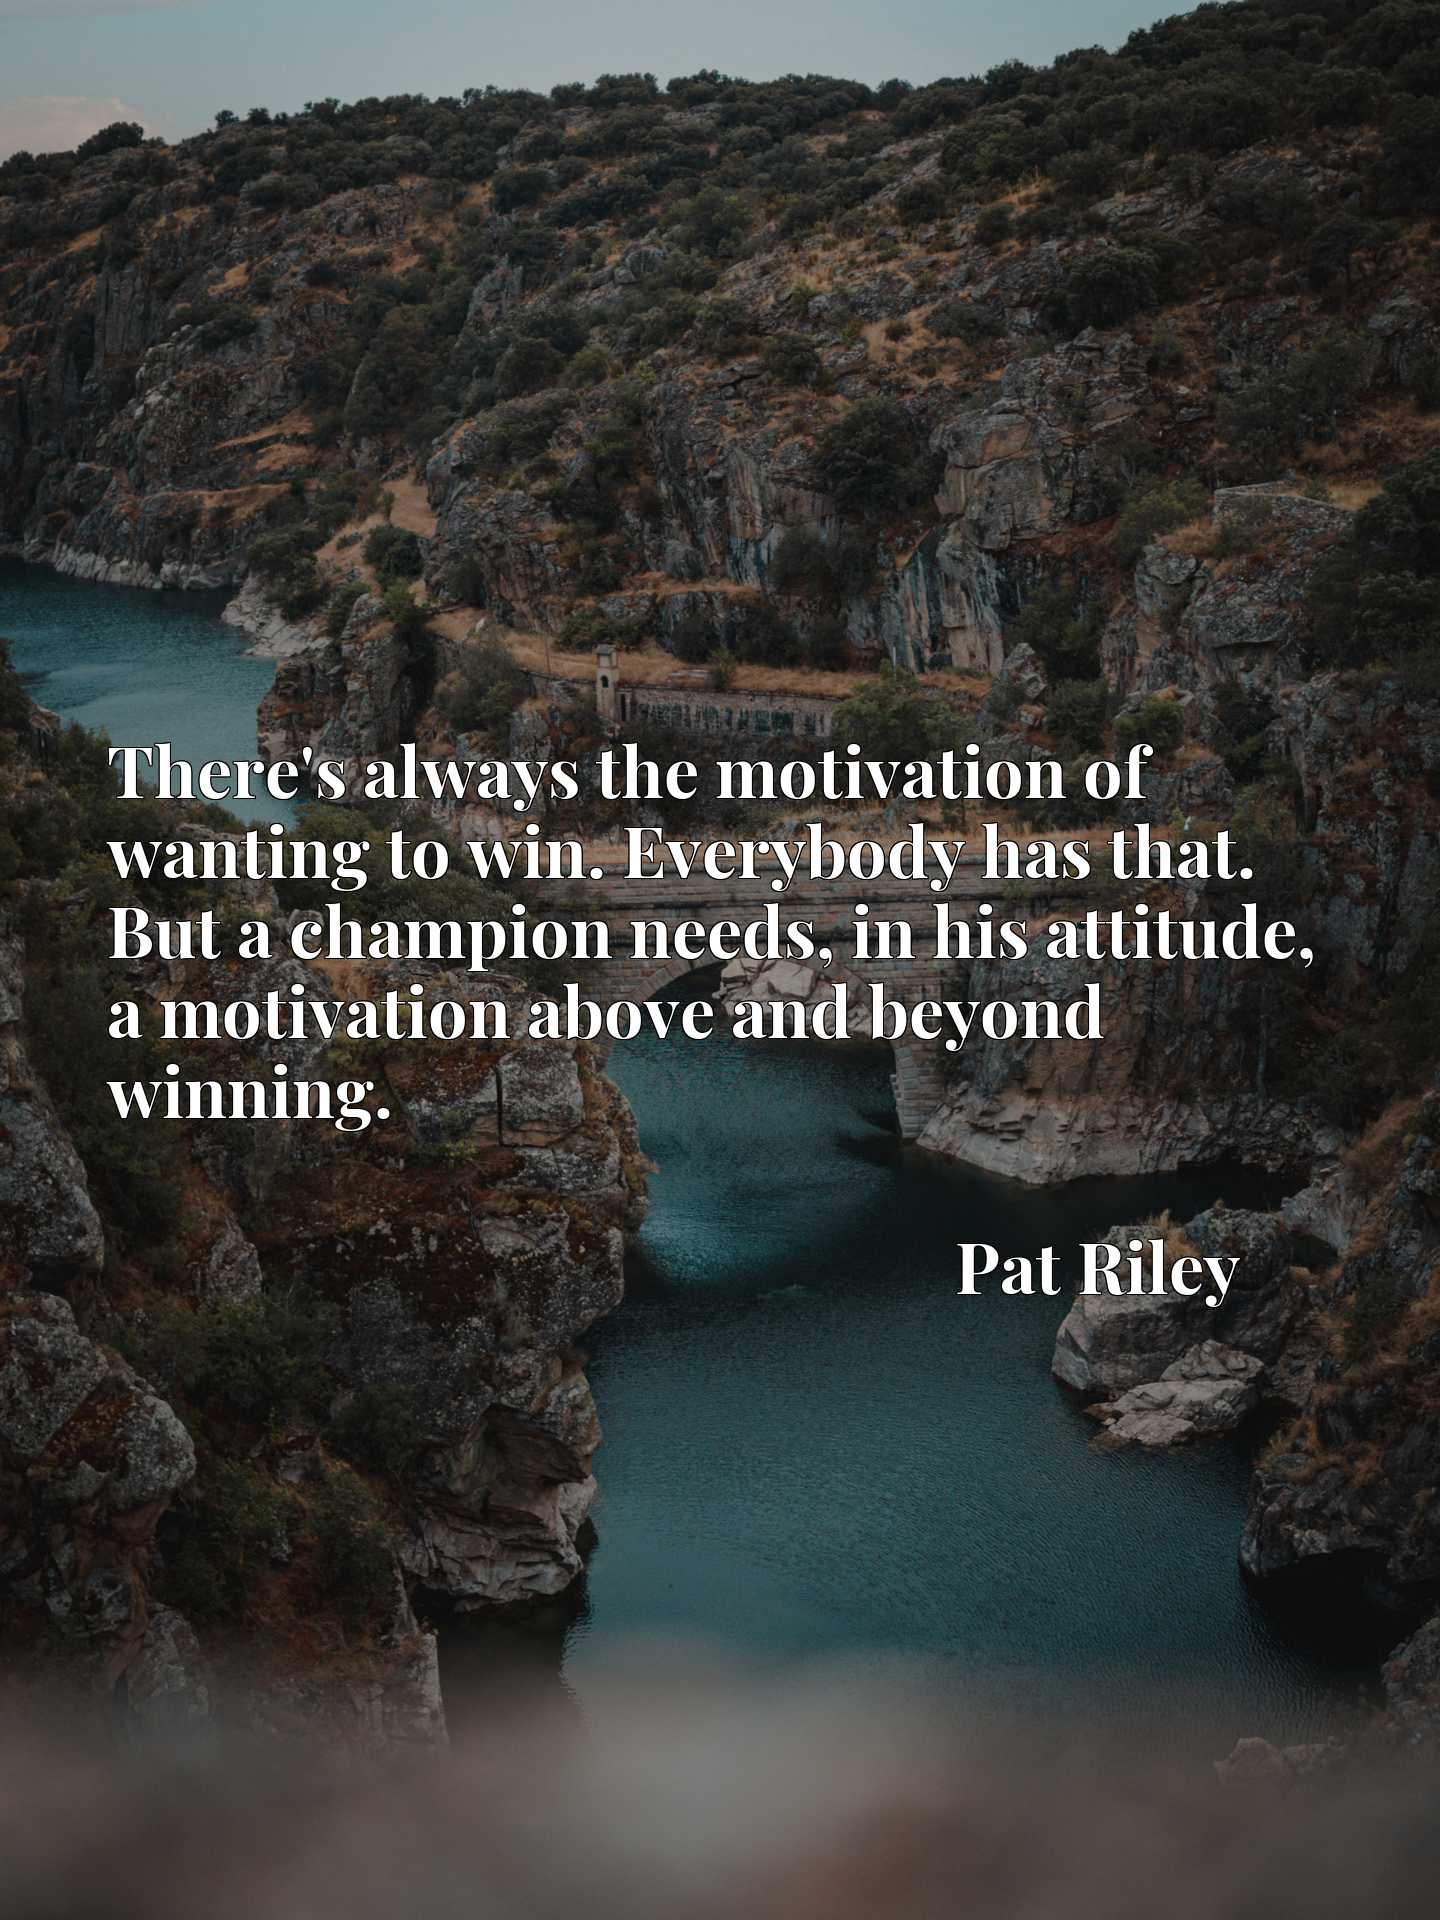 There's always the motivation of wanting to win. Everybody has that. But a champion needs, in his attitude, a motivation above and beyond winning.